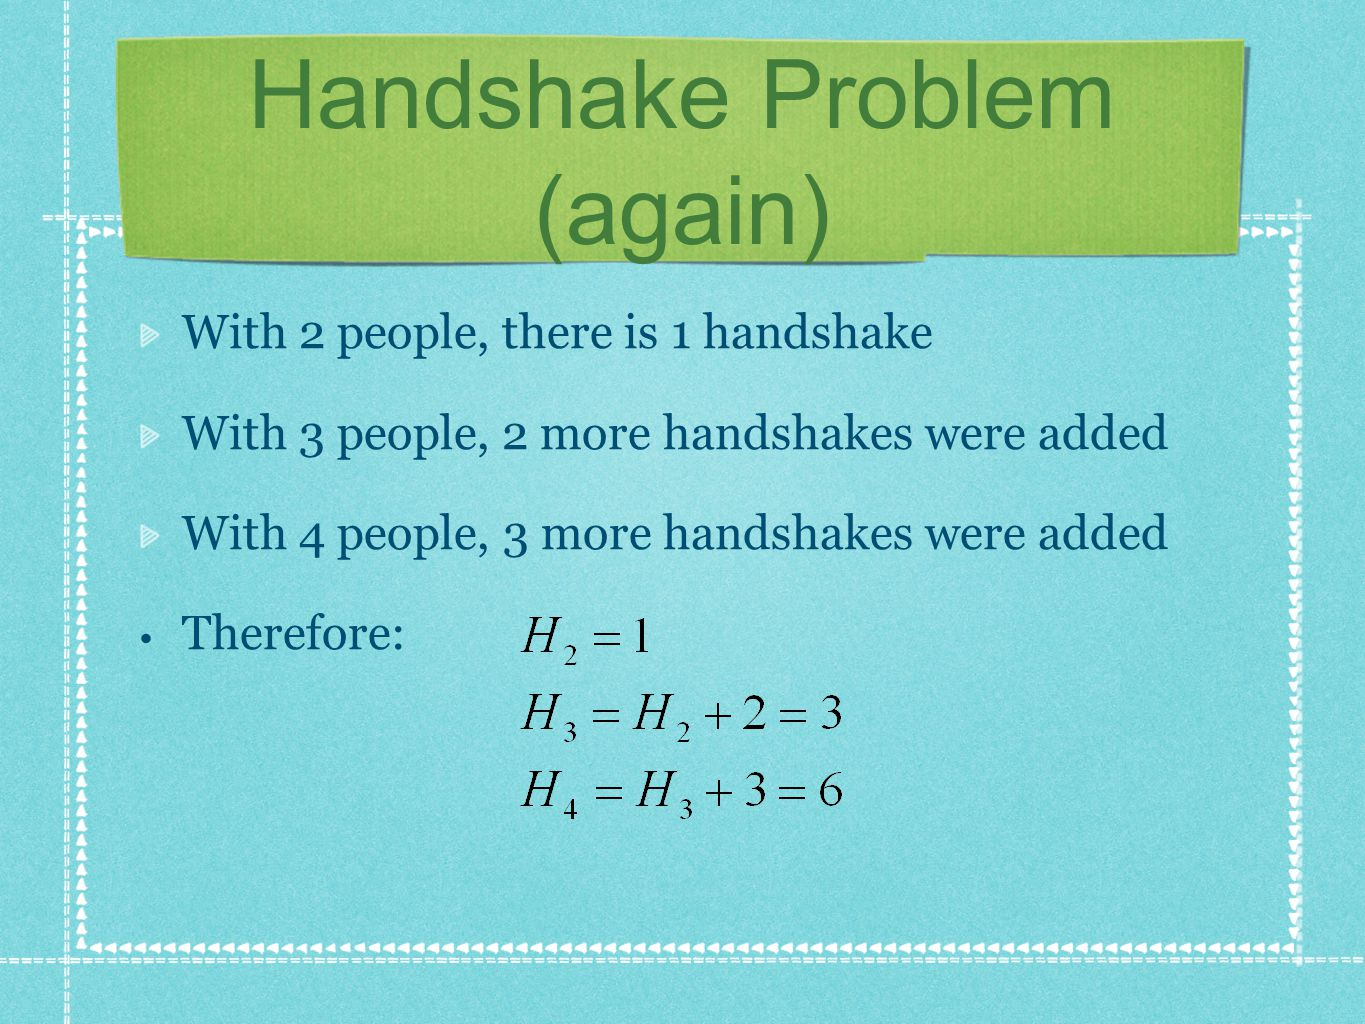 Handshake Problem (again) With 2 people, there is 1 handshake With 3 people, 2 more handshakes were added With 4 people, 3 more handshakes were added Therefore: